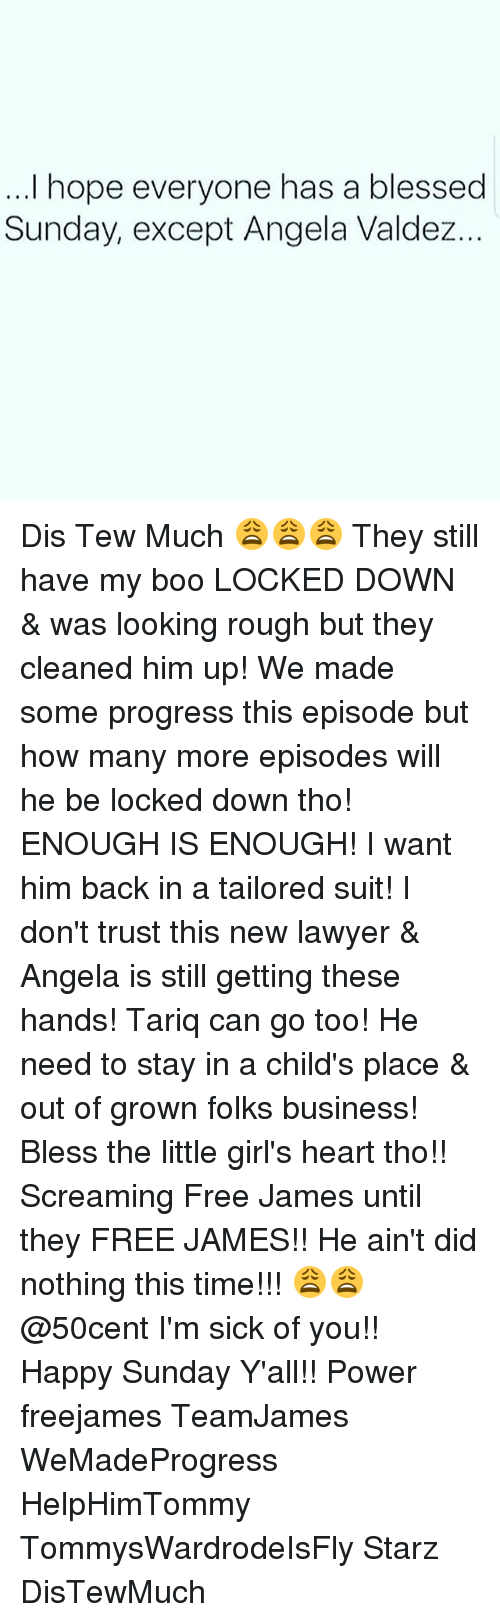 Dis Tew Much: I hope everyone has a blessed  Sunday, except Angela Valdez... Dis Tew Much 😩😩😩 They still have my boo LOCKED DOWN & was looking rough but they cleaned him up! We made some progress this episode but how many more episodes will he be locked down tho! ENOUGH IS ENOUGH! I want him back in a tailored suit! I don't trust this new lawyer & Angela is still getting these hands! Tariq can go too! He need to stay in a child's place & out of grown folks business! Bless the little girl's heart tho!! Screaming Free James until they FREE JAMES!! He ain't did nothing this time!!! 😩😩 @50cent I'm sick of you!! Happy Sunday Y'all!! Power freejames TeamJames WeMadeProgress HelpHimTommy TommysWardrodeIsFly Starz DisTewMuch